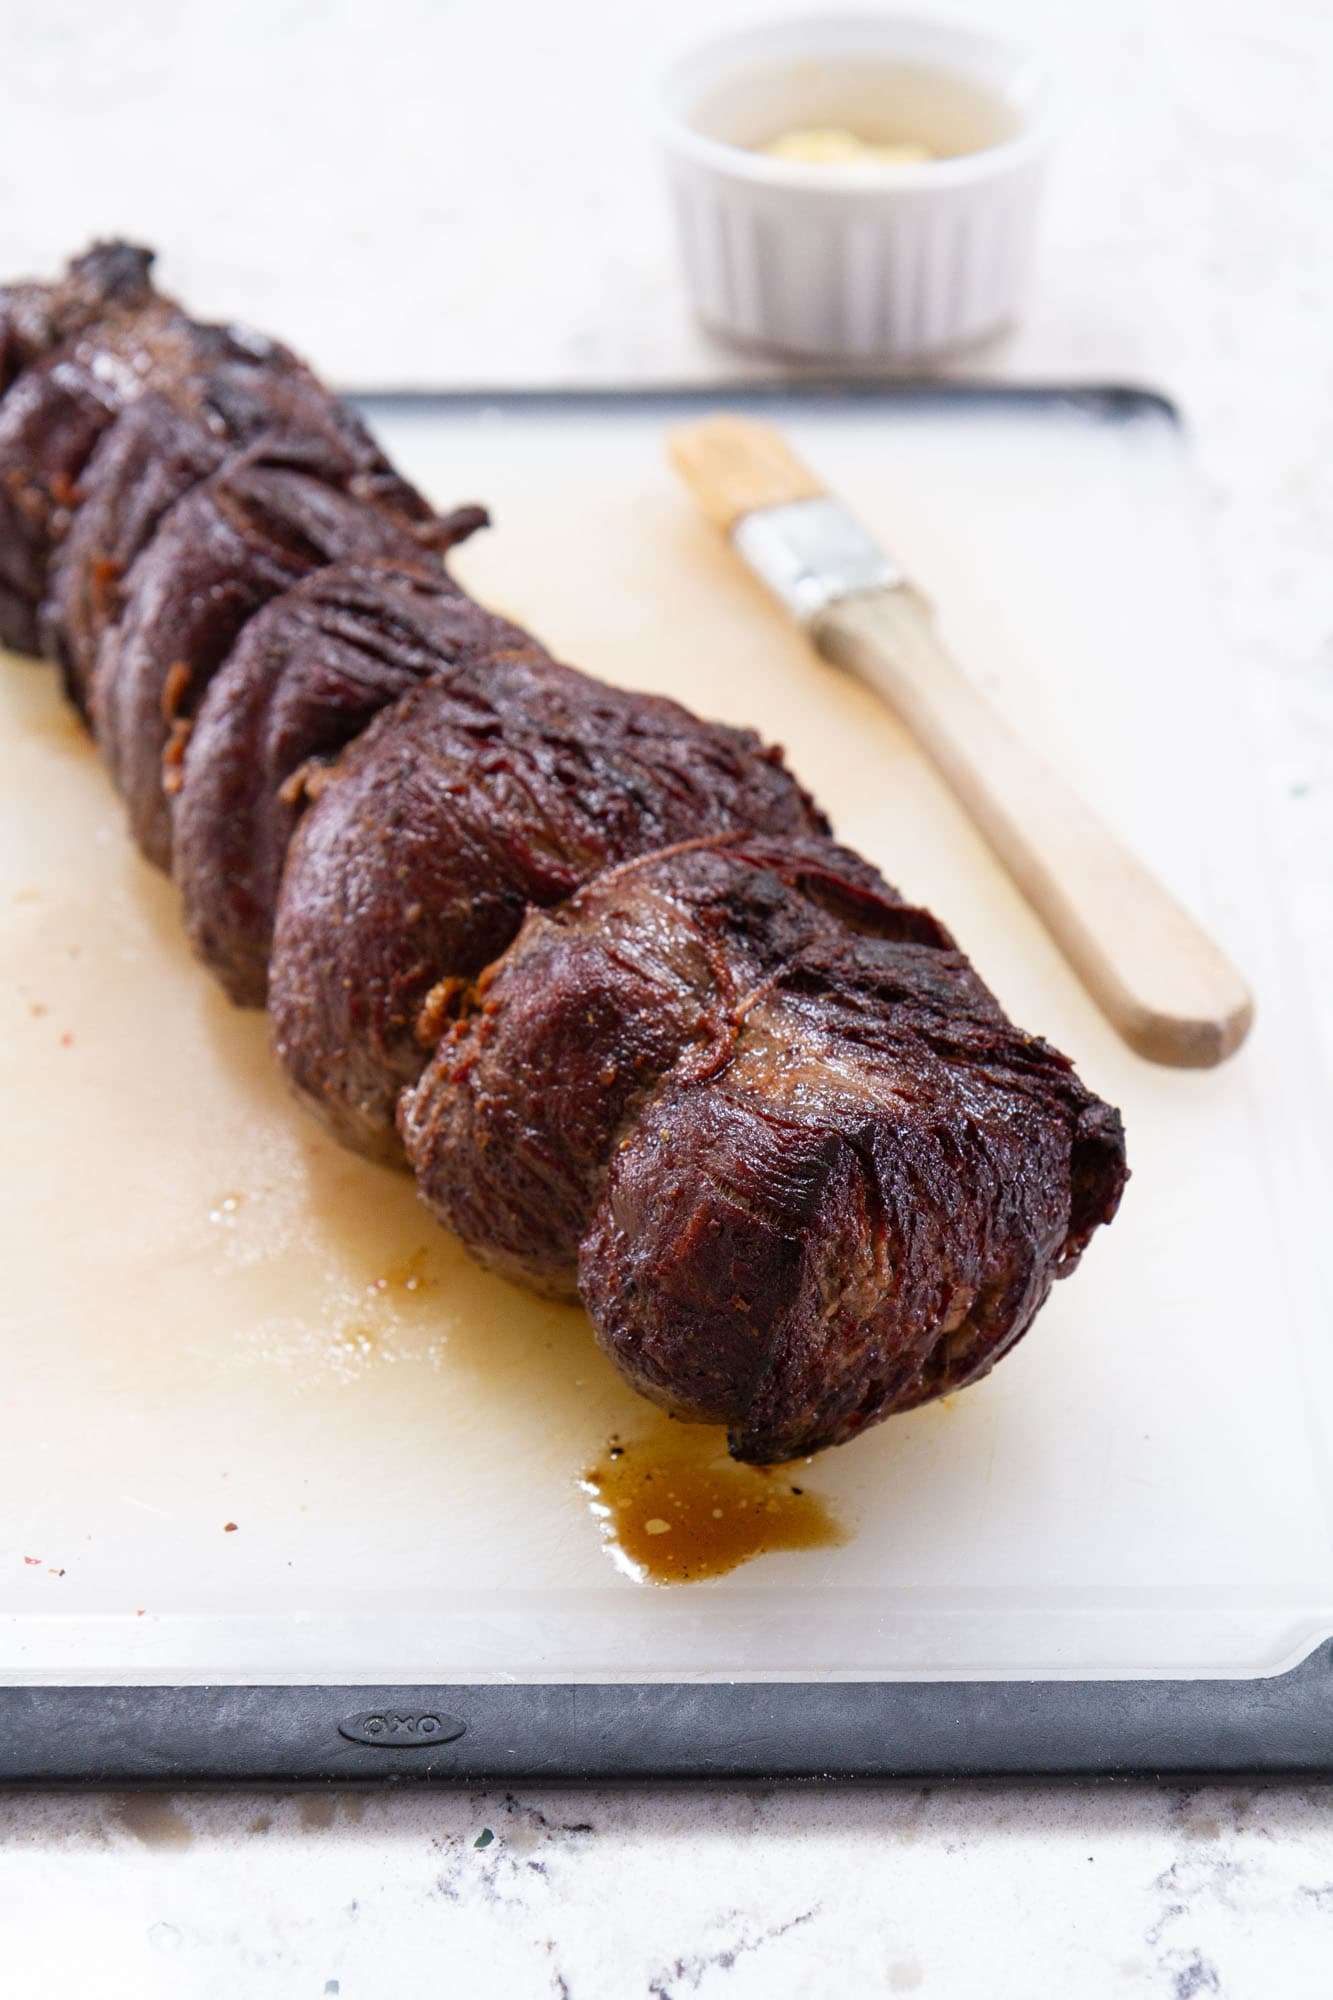 cooked beef on cutting board